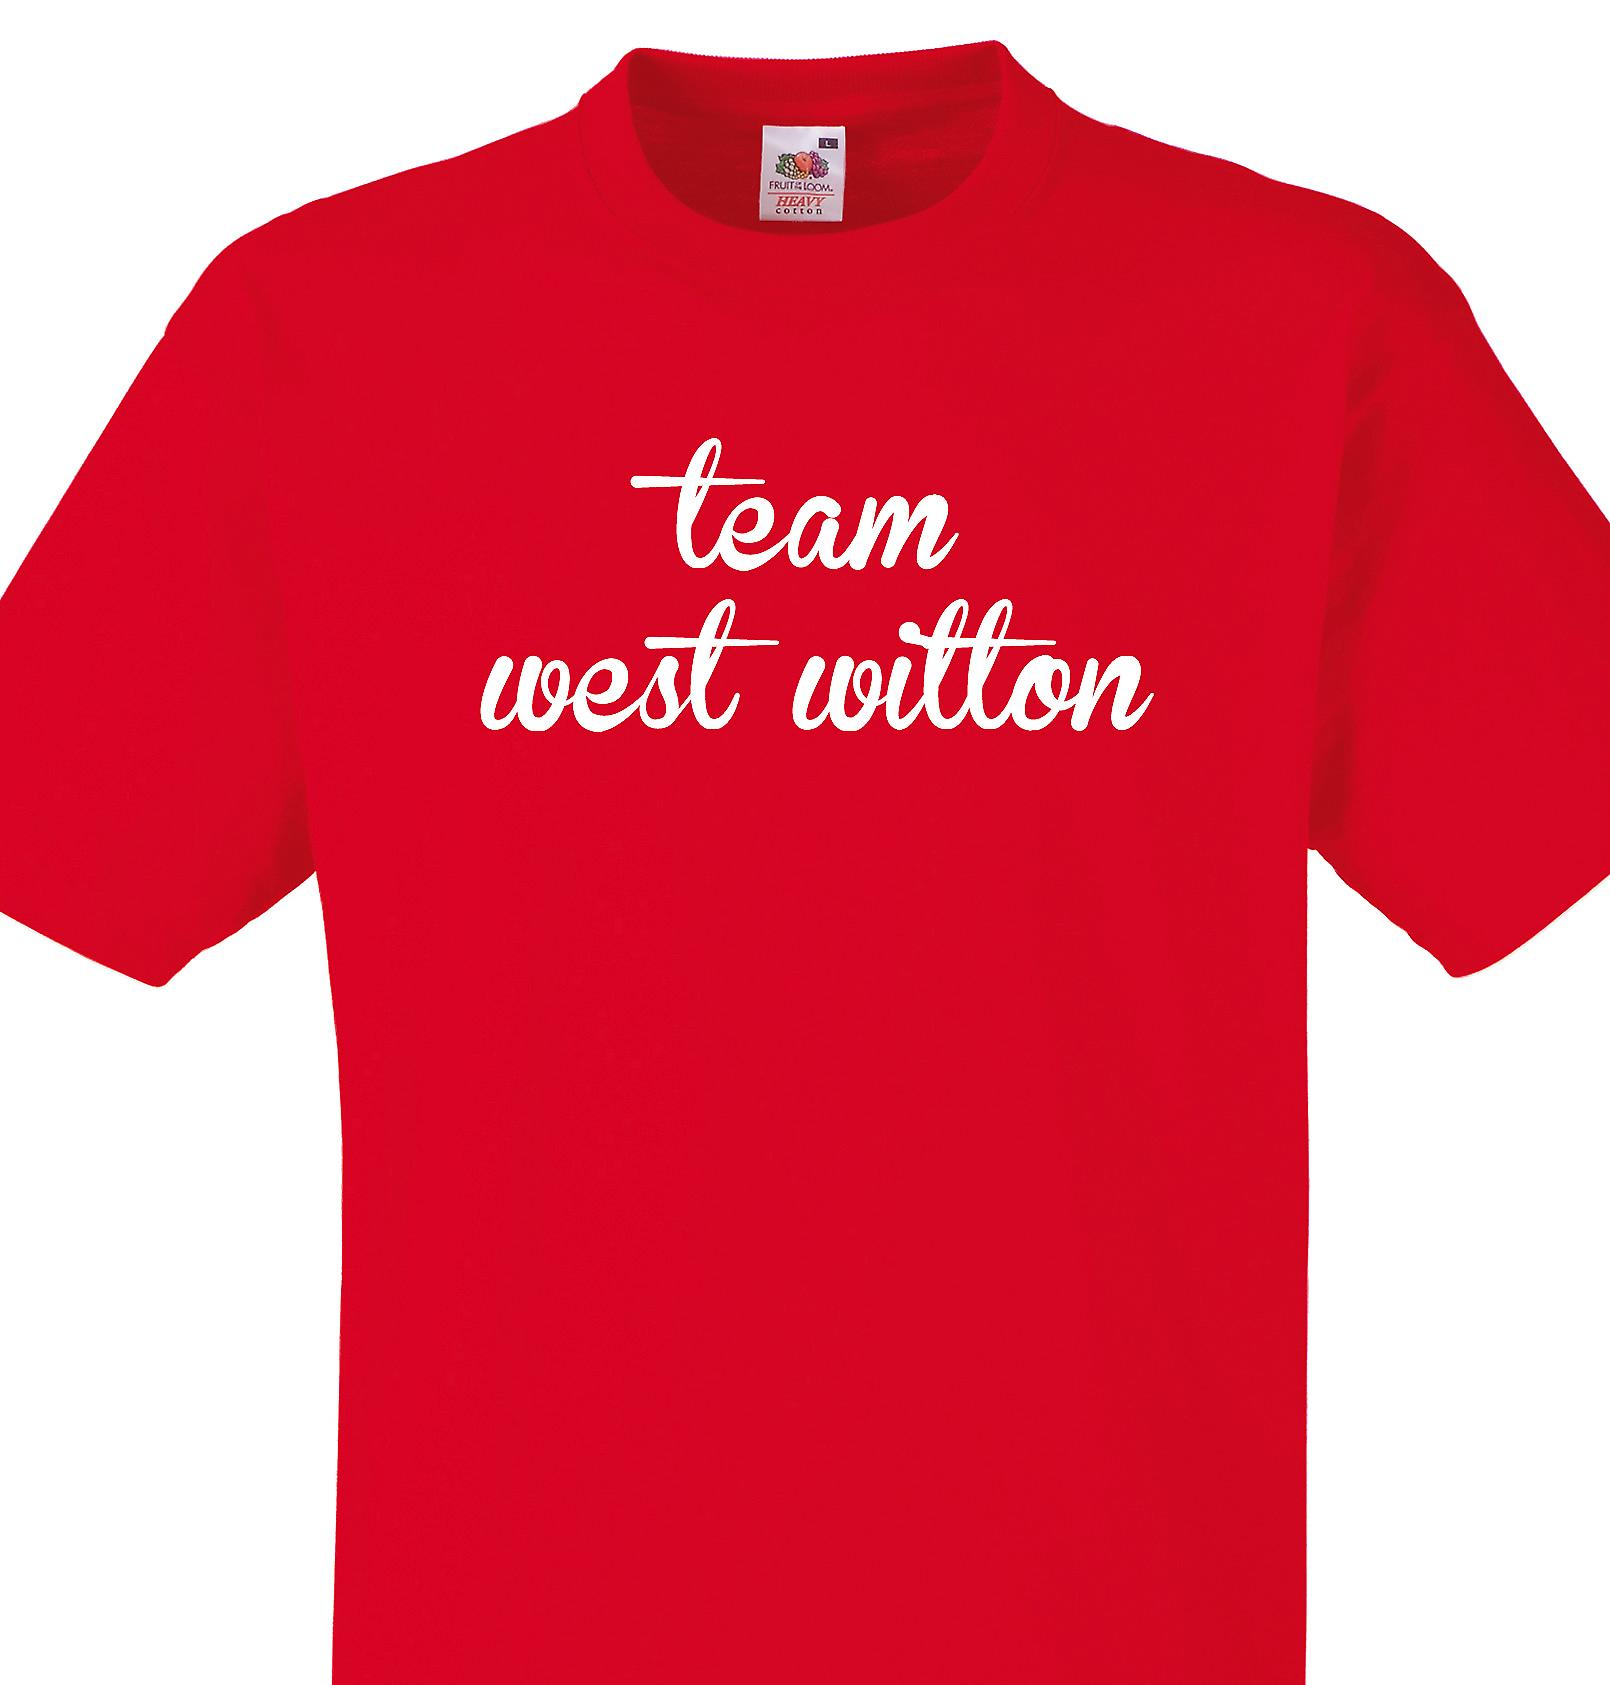 Team West witton Red T shirt